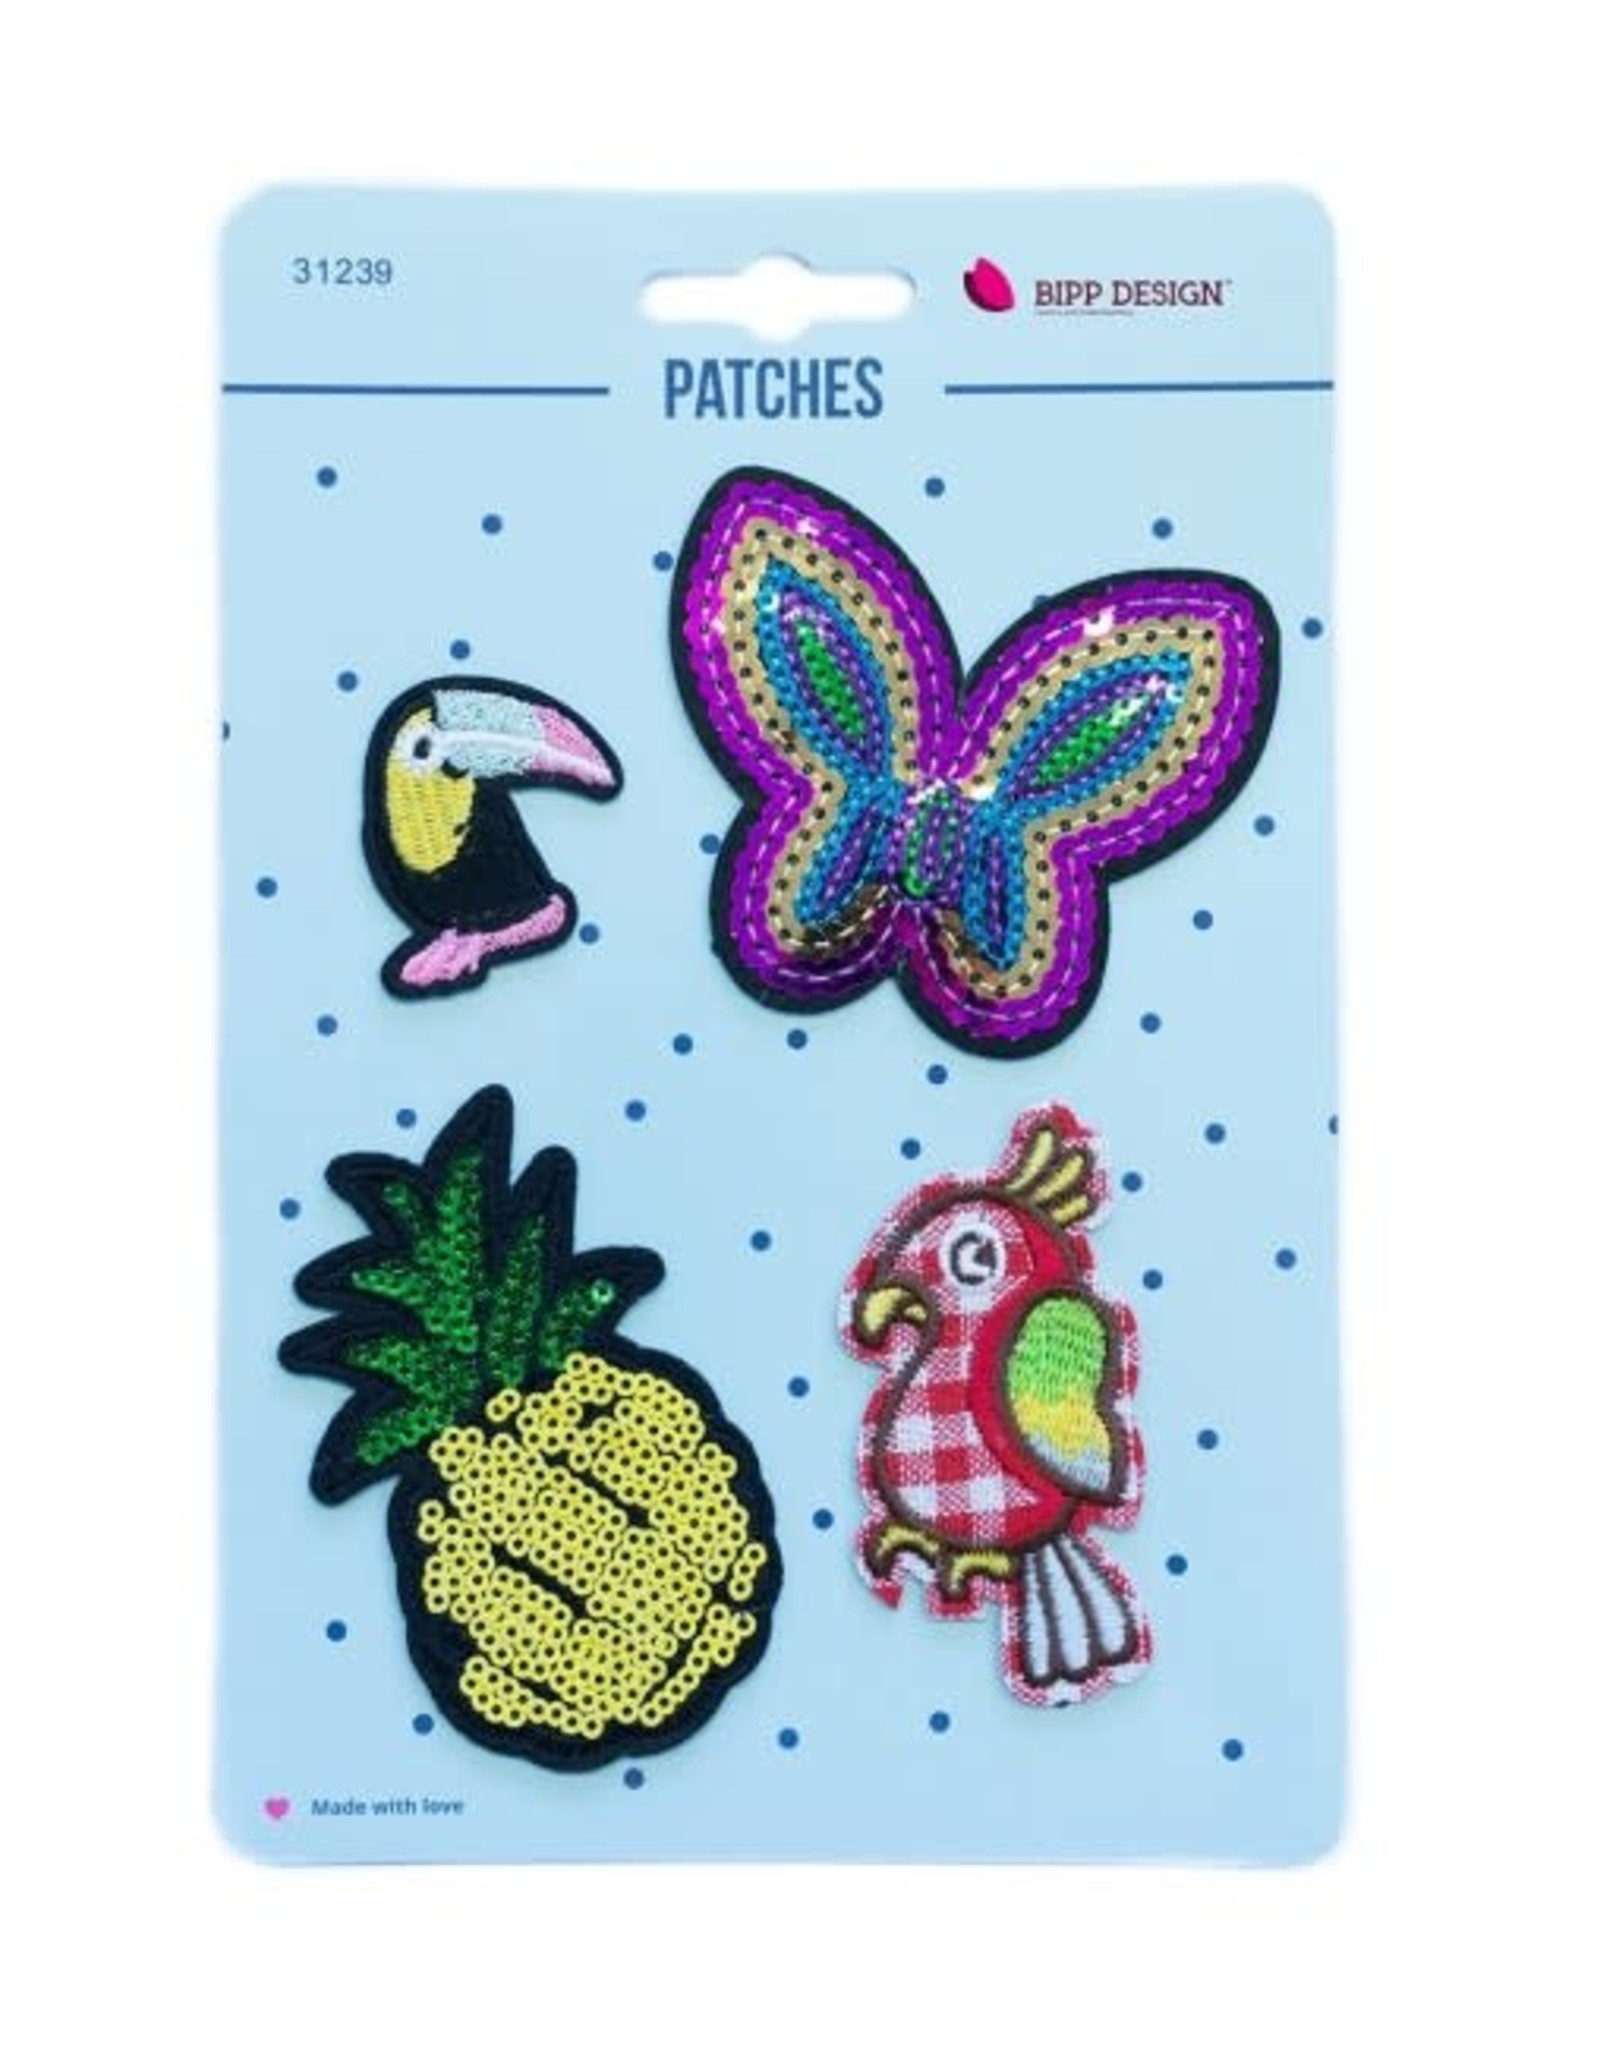 Bipp Design Patches - Butterfly Pineapple